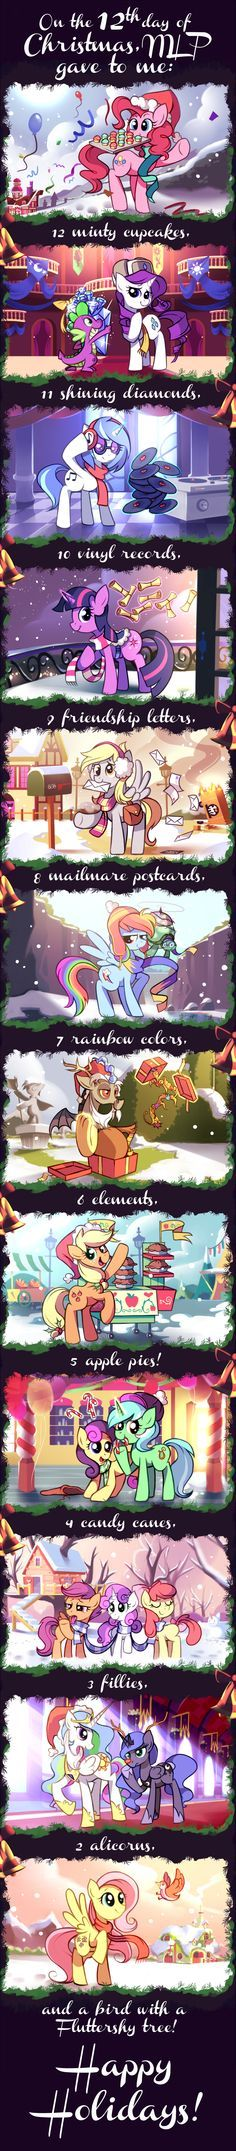 The 12 Days of Christmas by Karzahnii.deviantart.com on @deviantART---- christmas is coming my brony friends!!!!